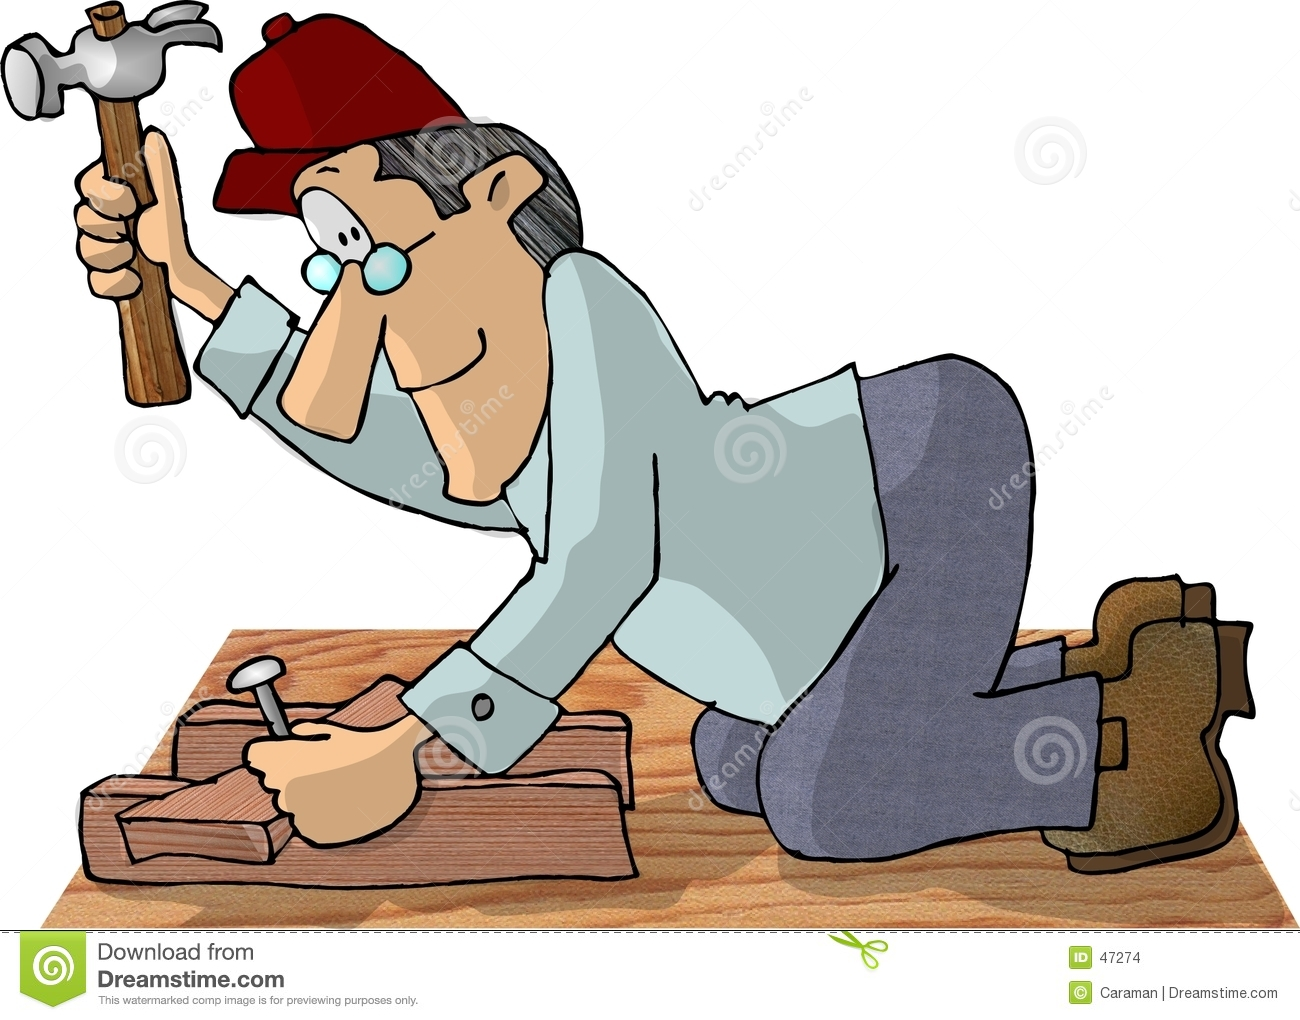 This illustration that I created depicts a carpenter using a hammer to ...